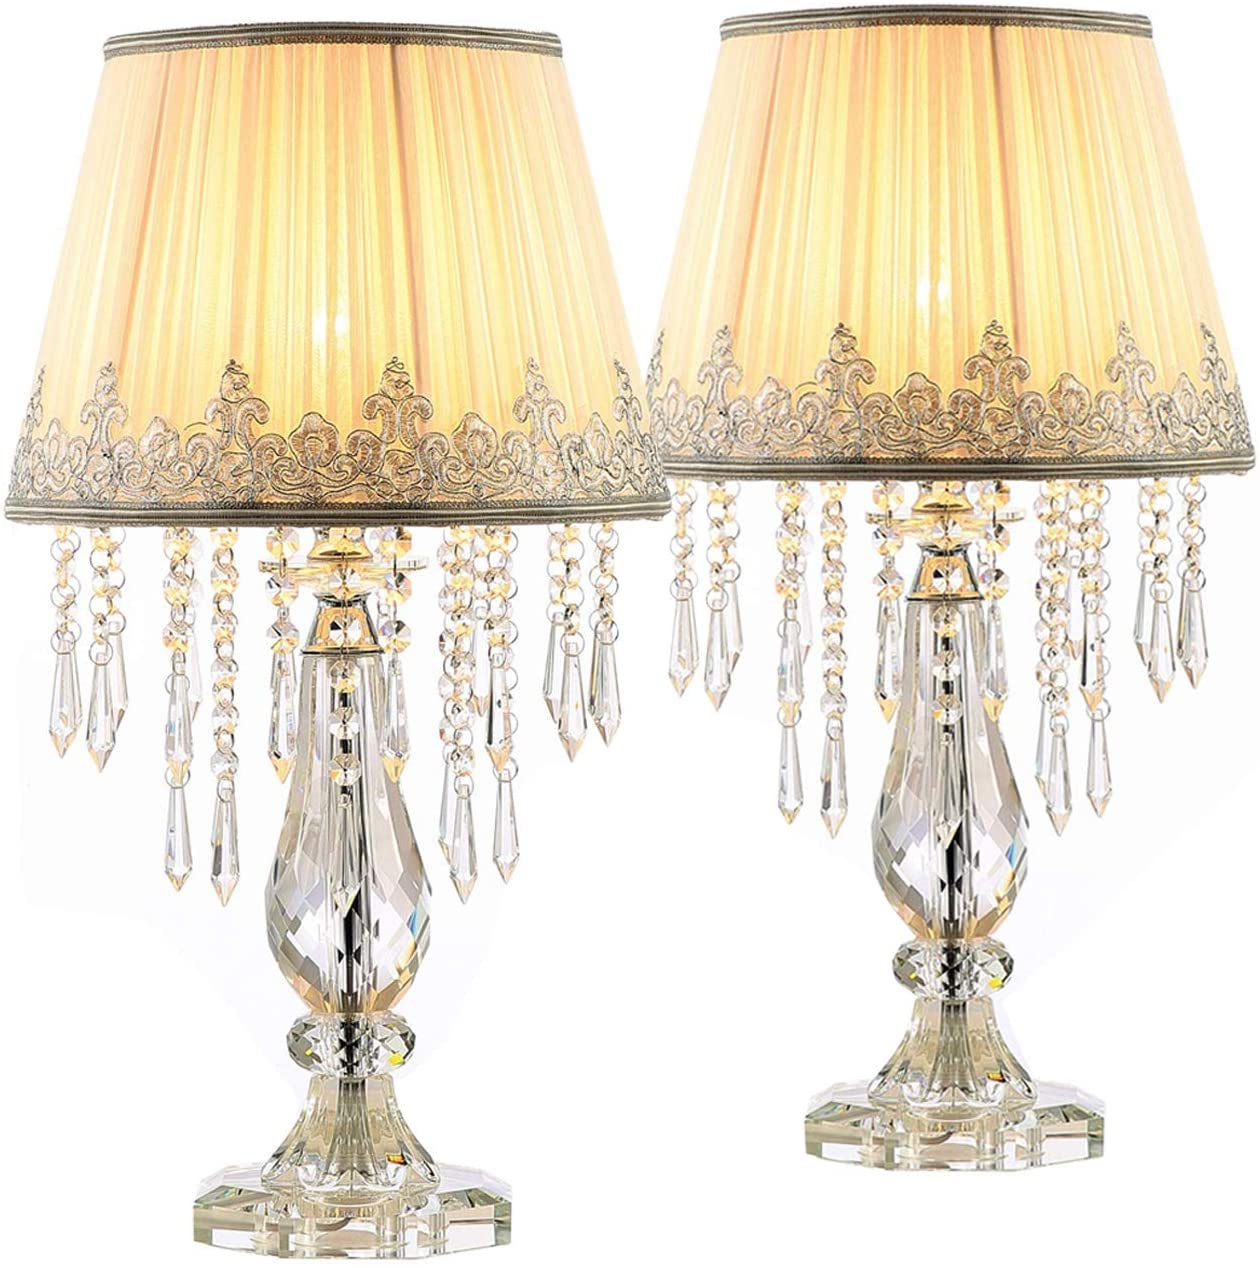 Table Lamps With Night Lights For Living Room Set Of 2